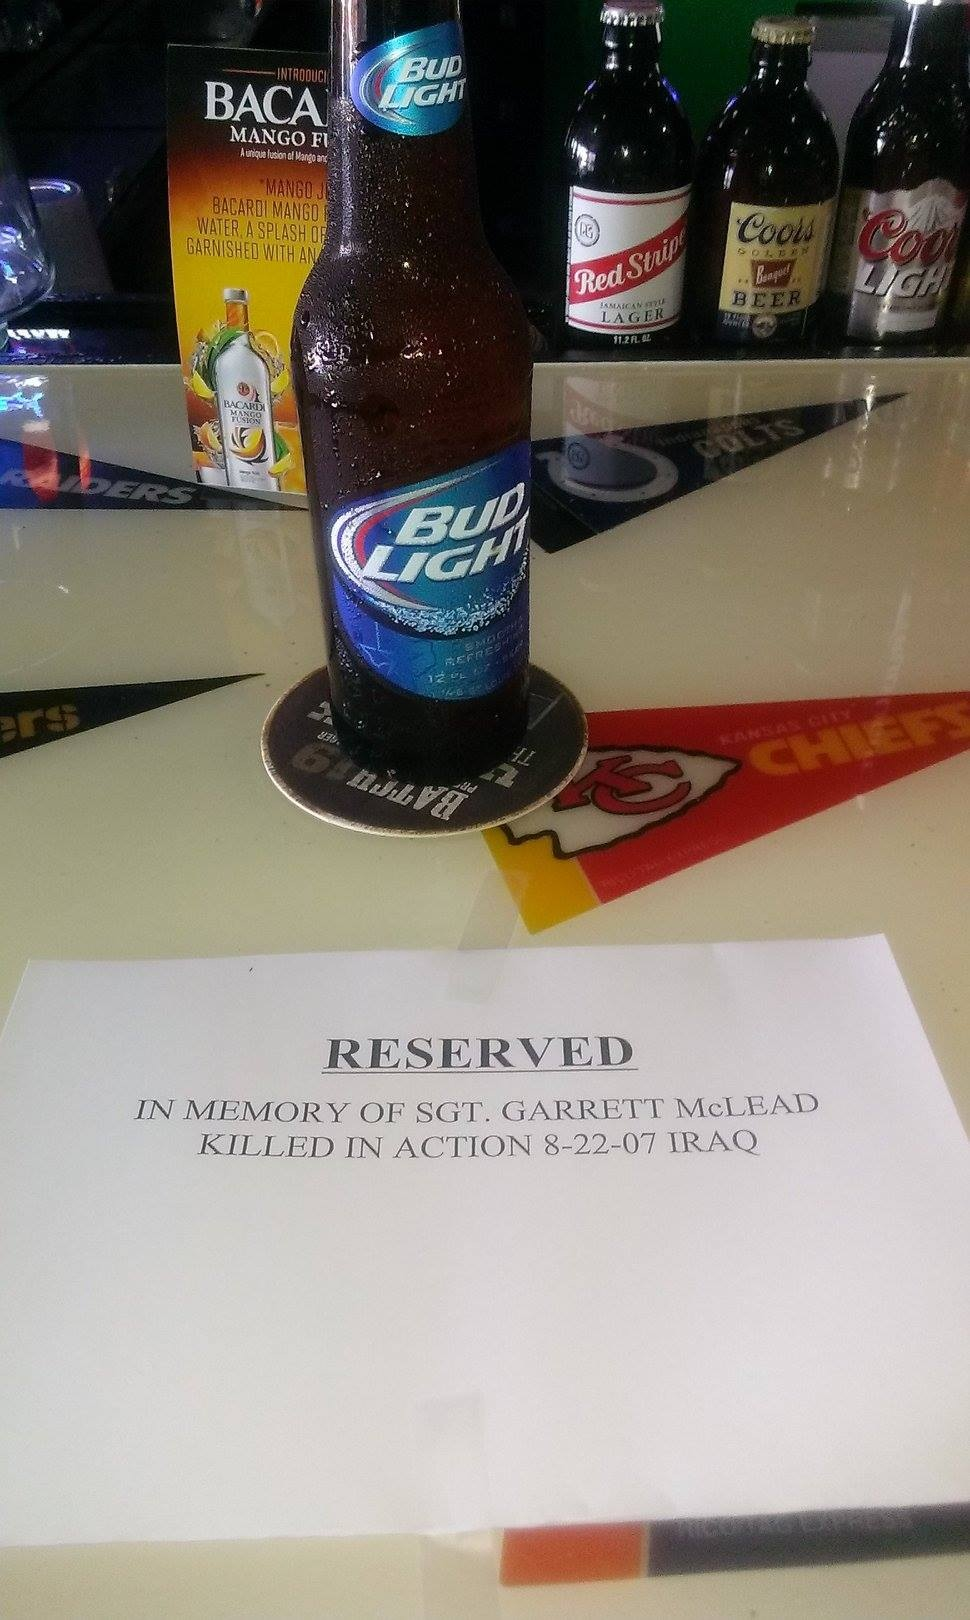 A friend was at a bar. A guy walked in, paid for a beer, set this on the counter and walked out.